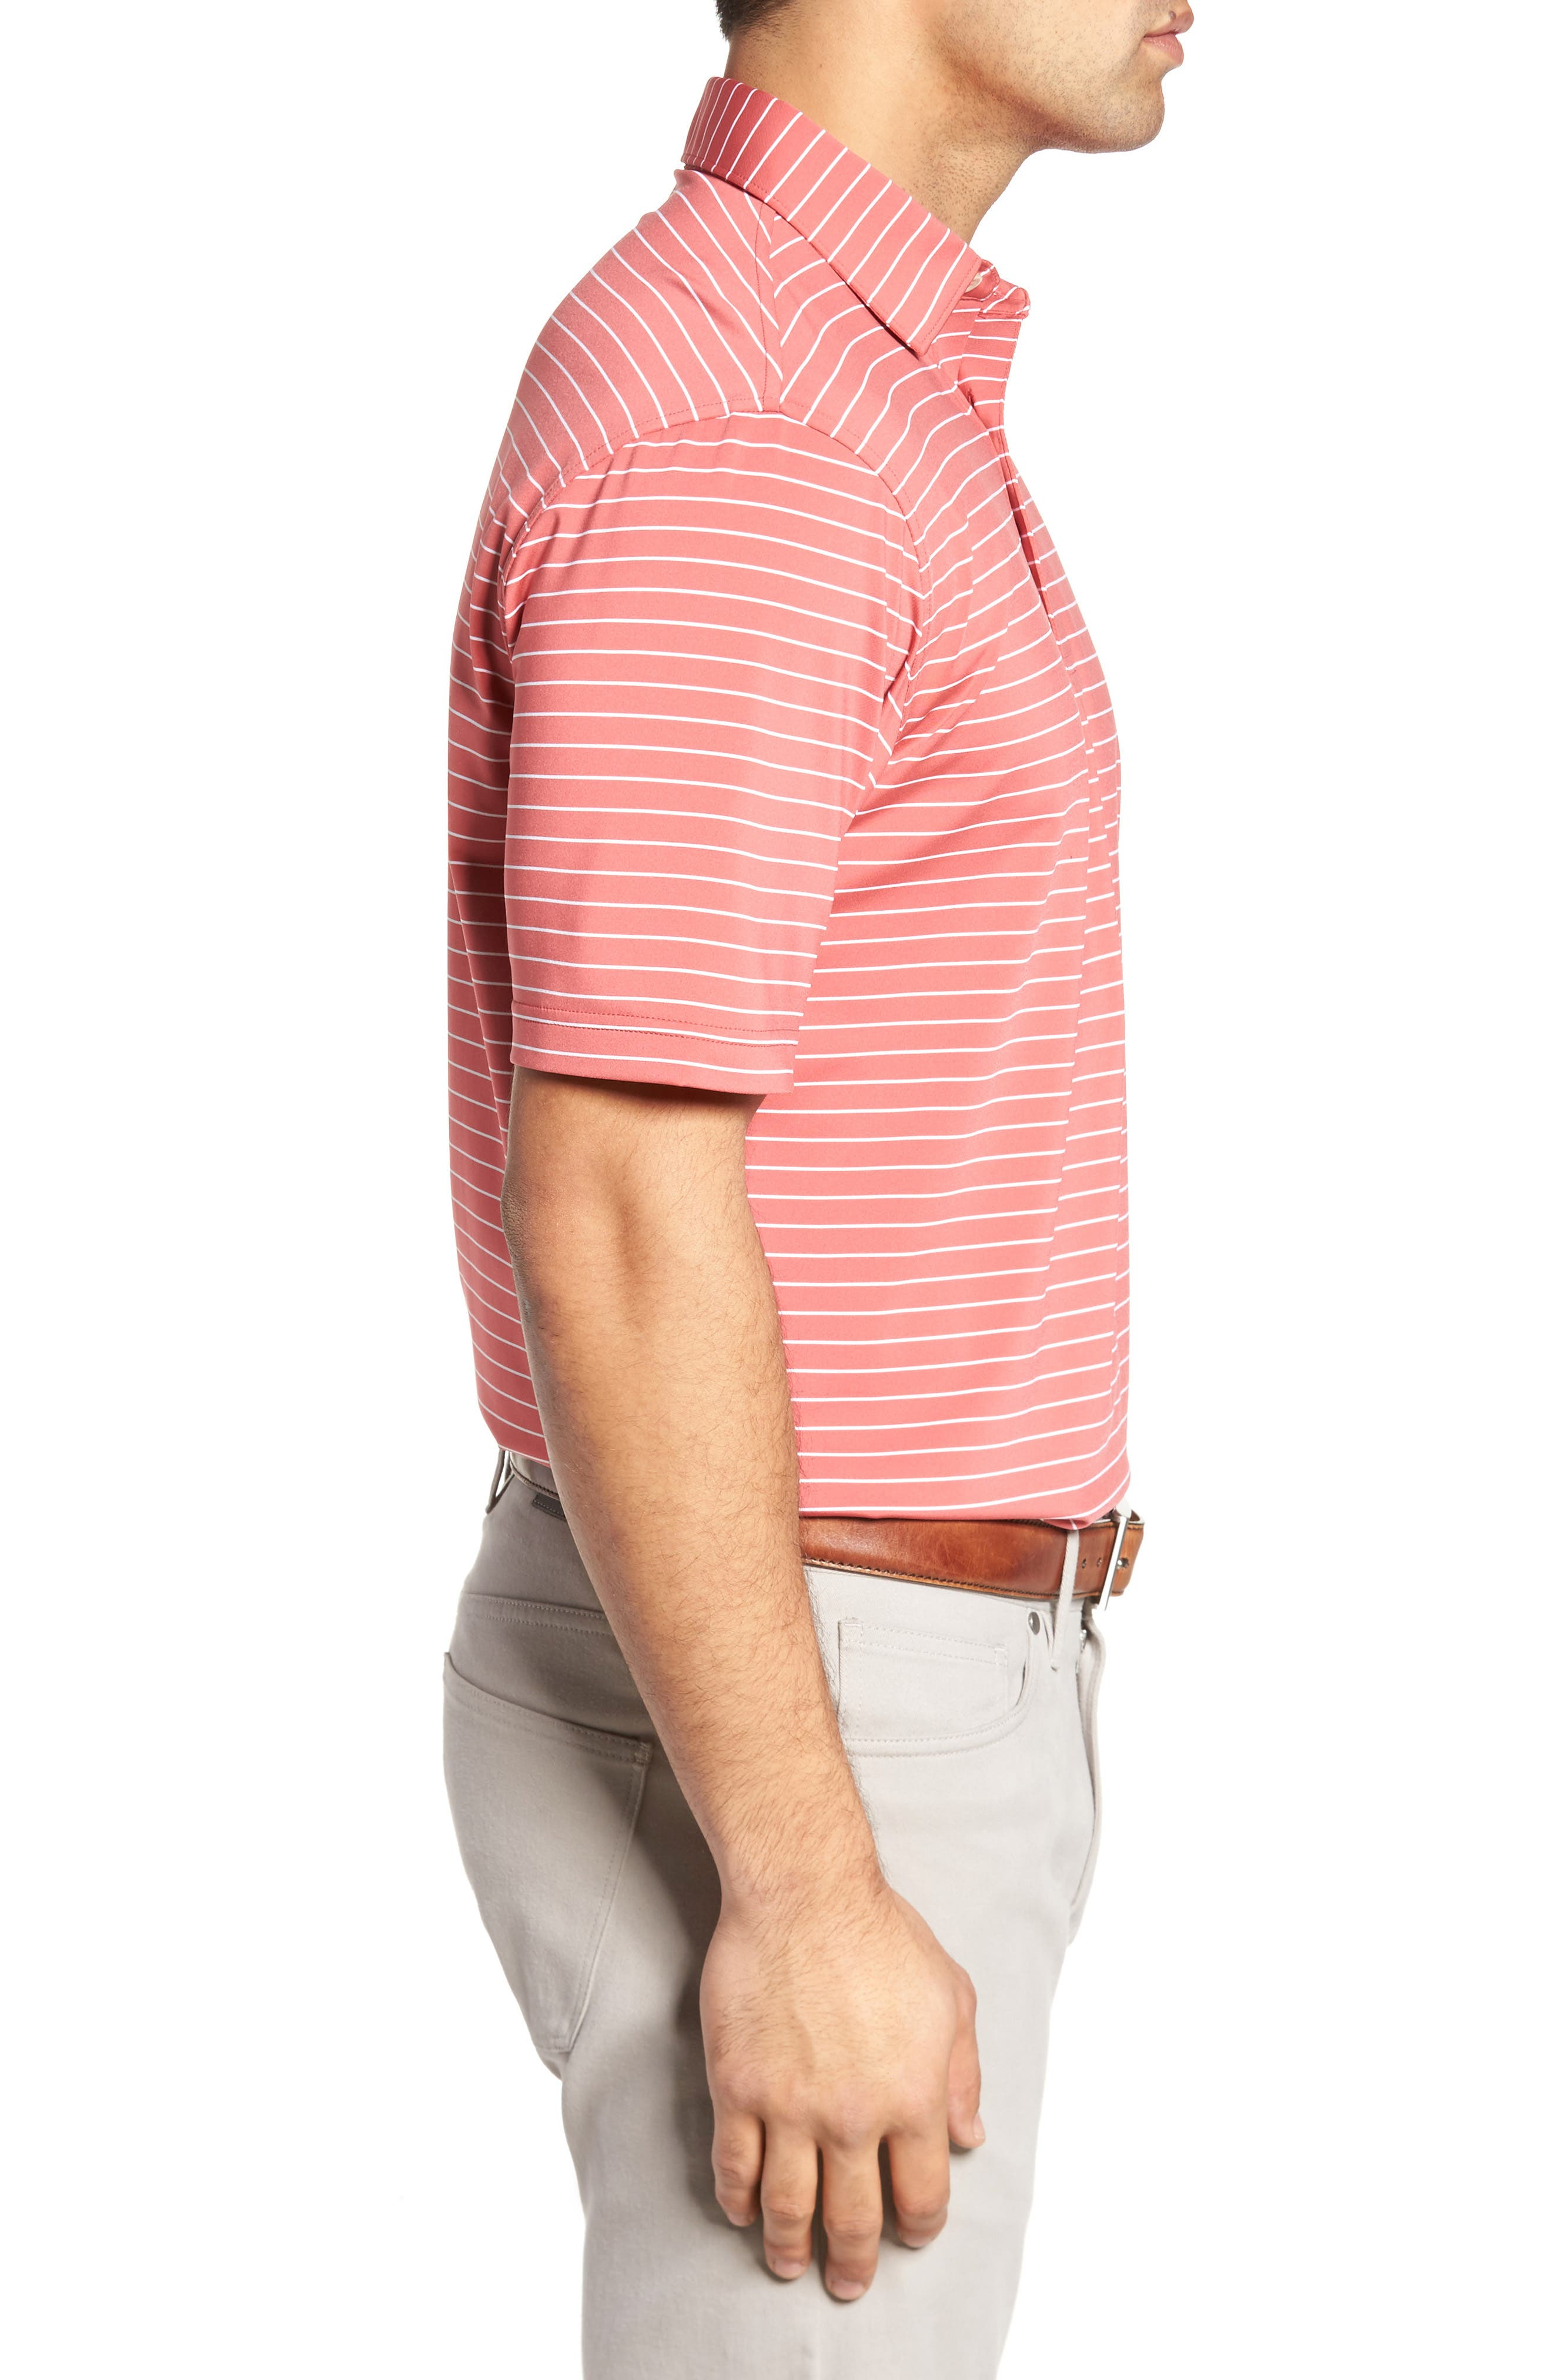 Halifax Pinstripe Stretch Jersey Polo,                             Alternate thumbnail 3, color,                             Cape Red